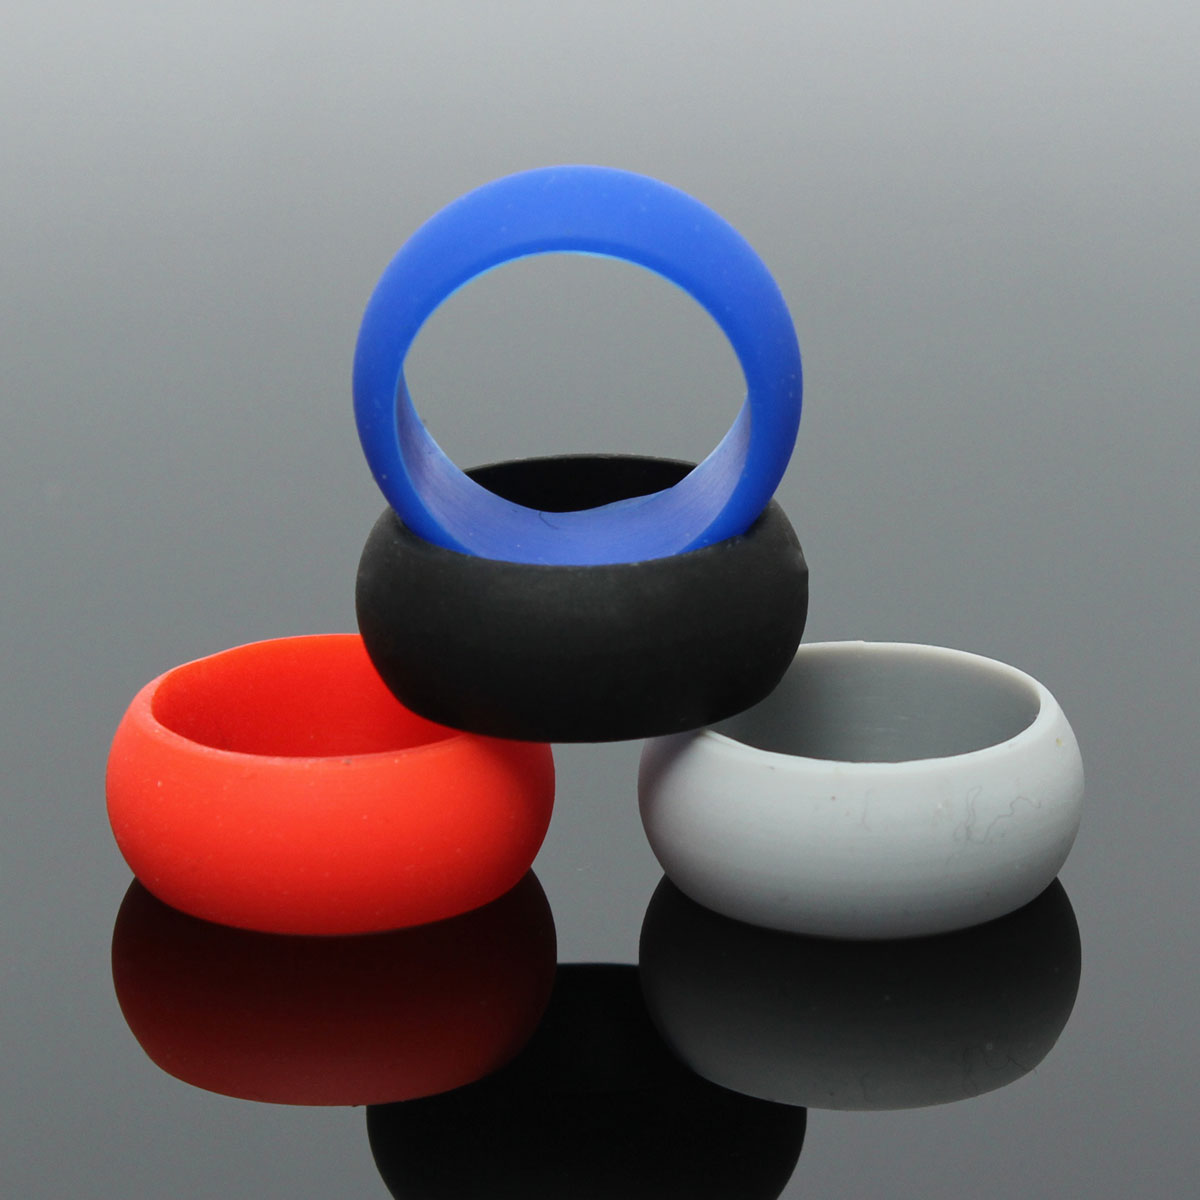 1pc Hot Sale Ring For Men Rubber Silicone Soft Touch Flexible Hypoallergenic  Wedding Romantic Engagement Love Ring Four Colors